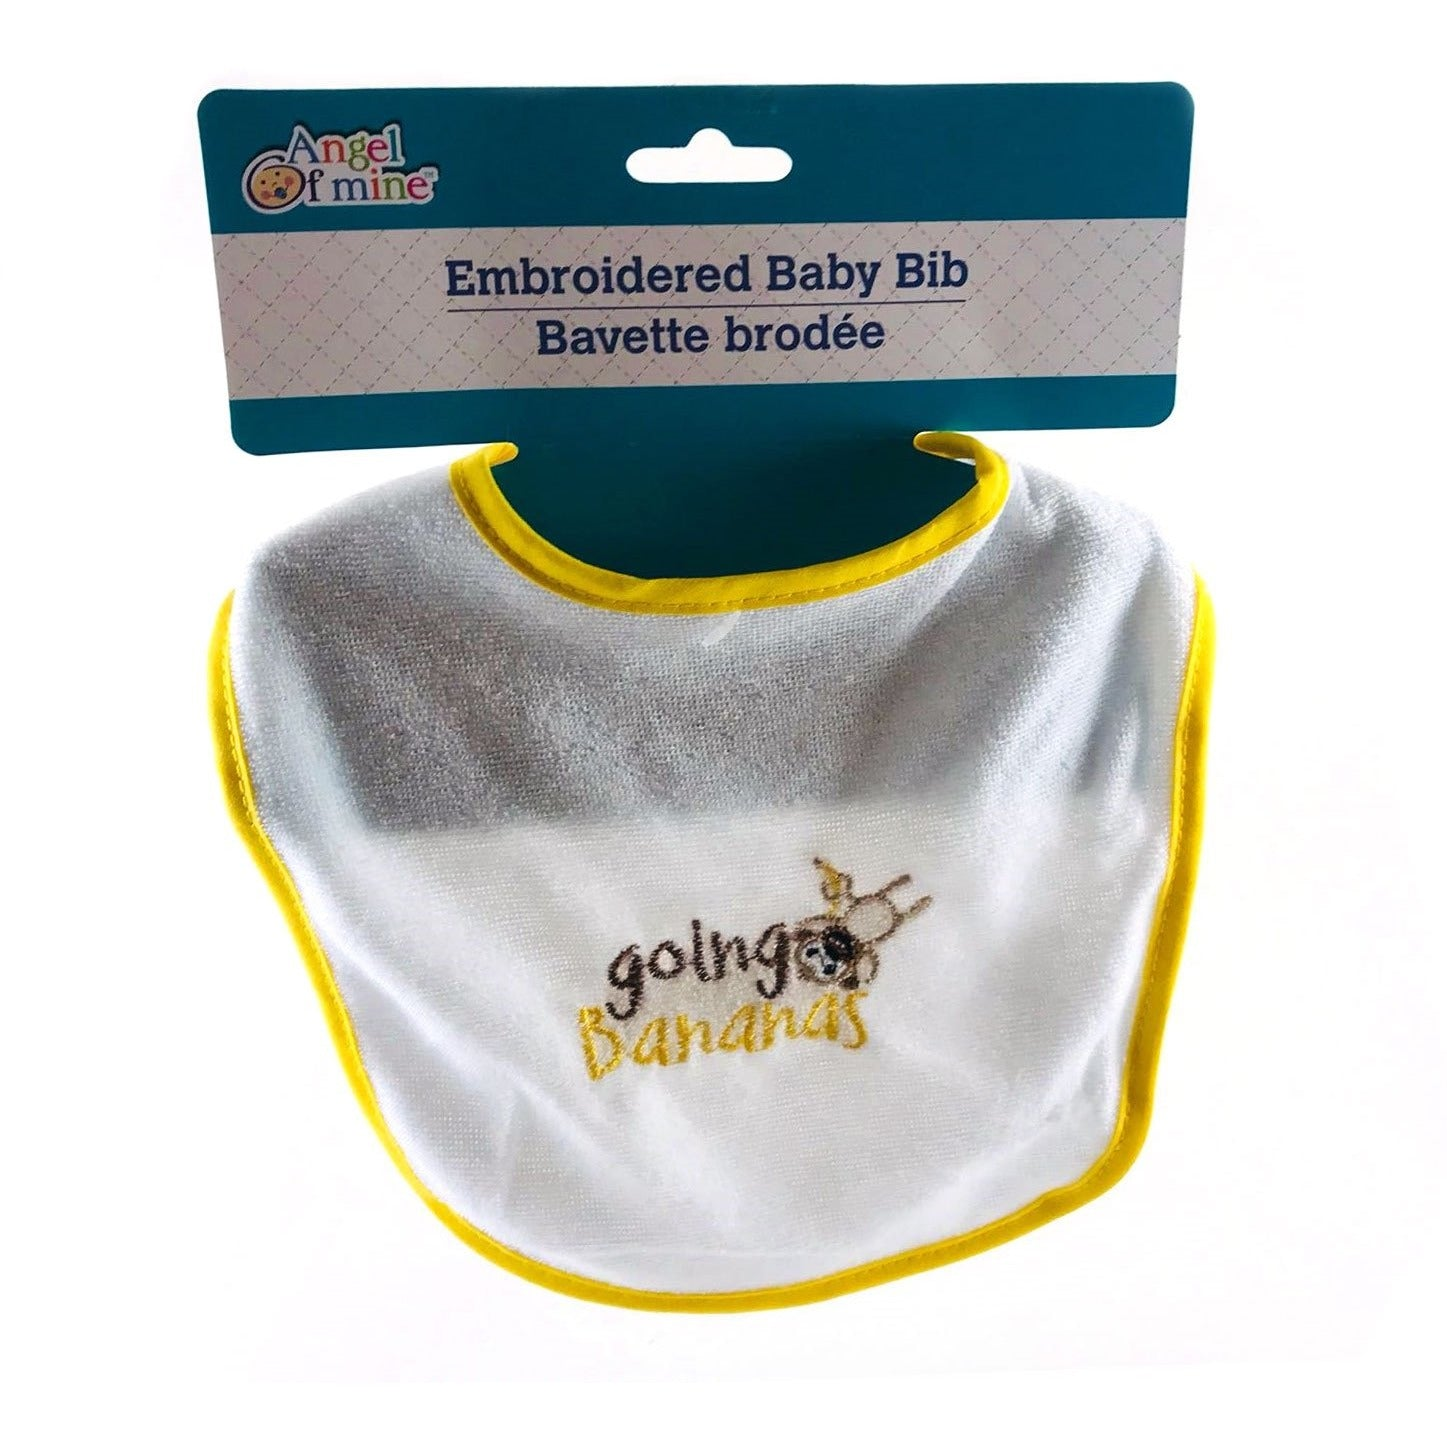 Angel of Mine Embroidered Baby Bib - Going Bananas